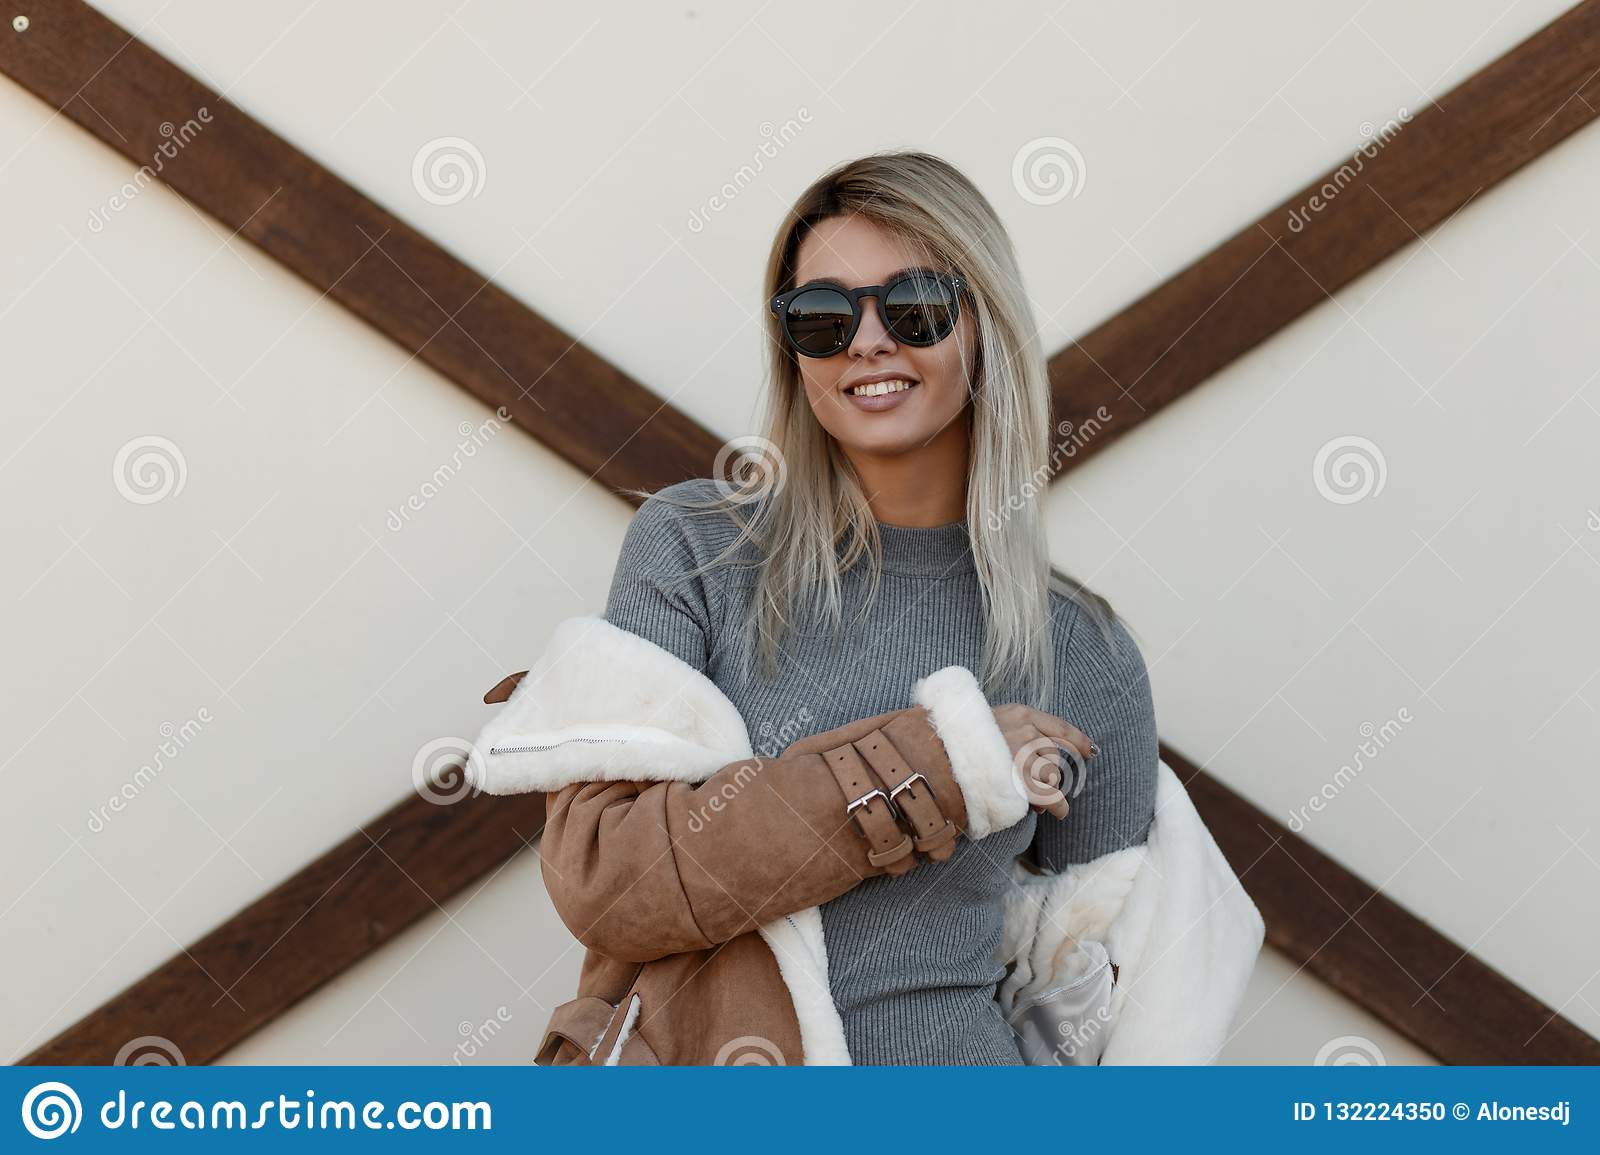 Beautiful young smiling girl with fashionable black sunglasses